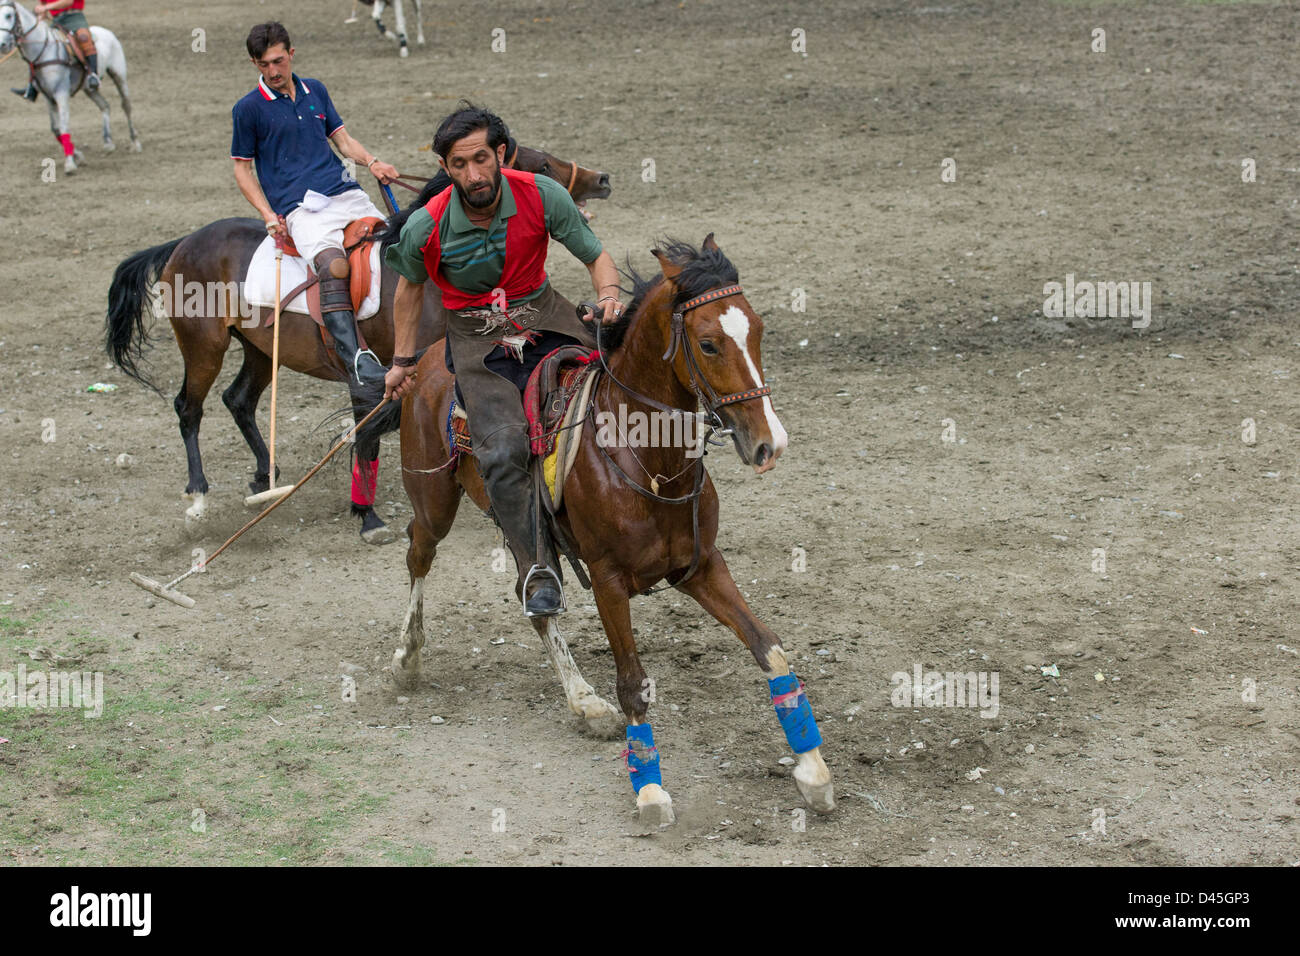 Fierce action during a polo match, Chitral, Khyber-Pakhtunkhwa, Pakistan - Stock Image